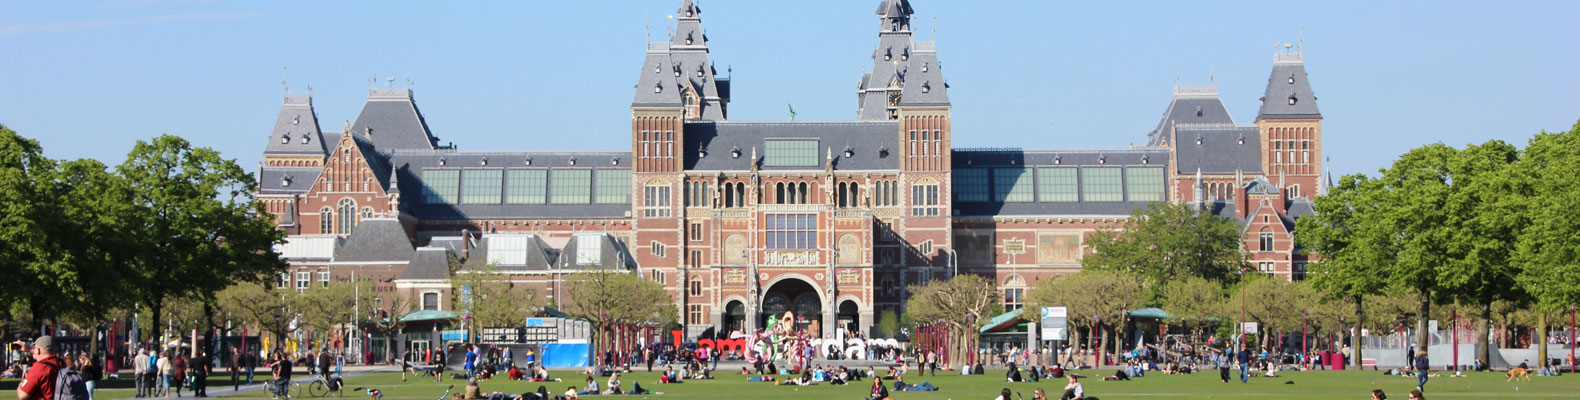 Rijksmuseum-summer-homepage-slider1